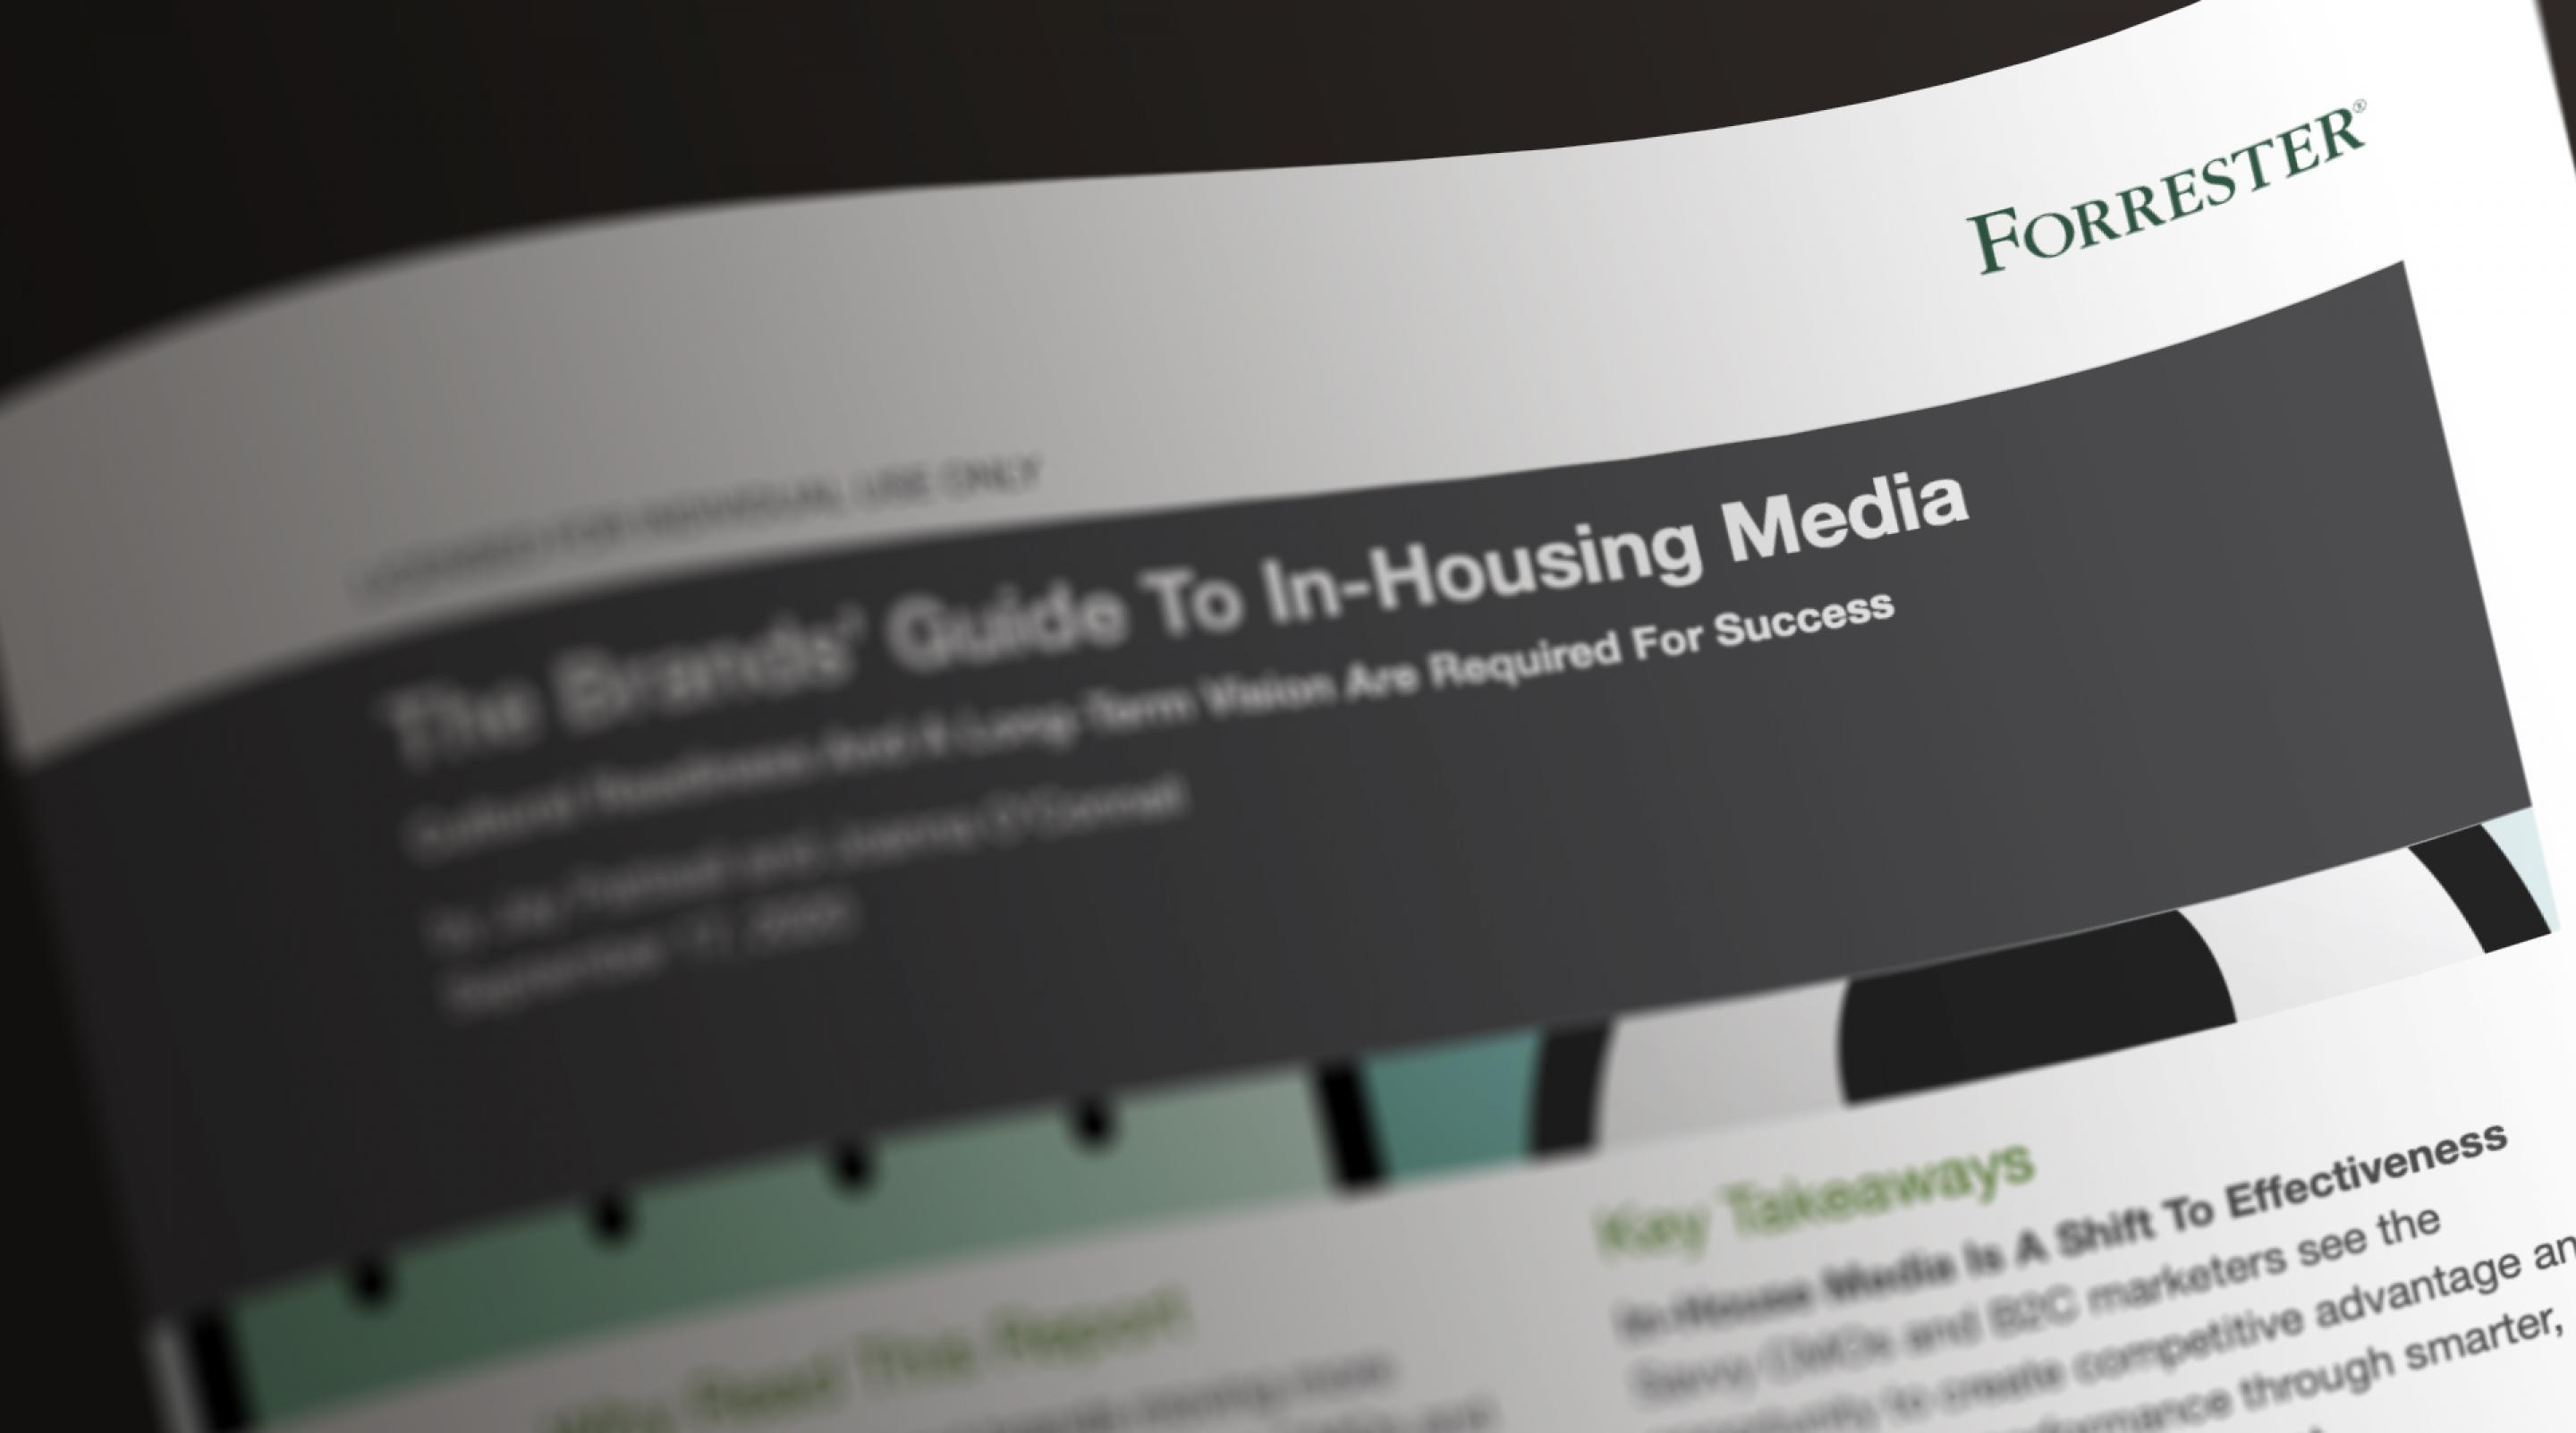 The Brands' Guide to In-Housing Media